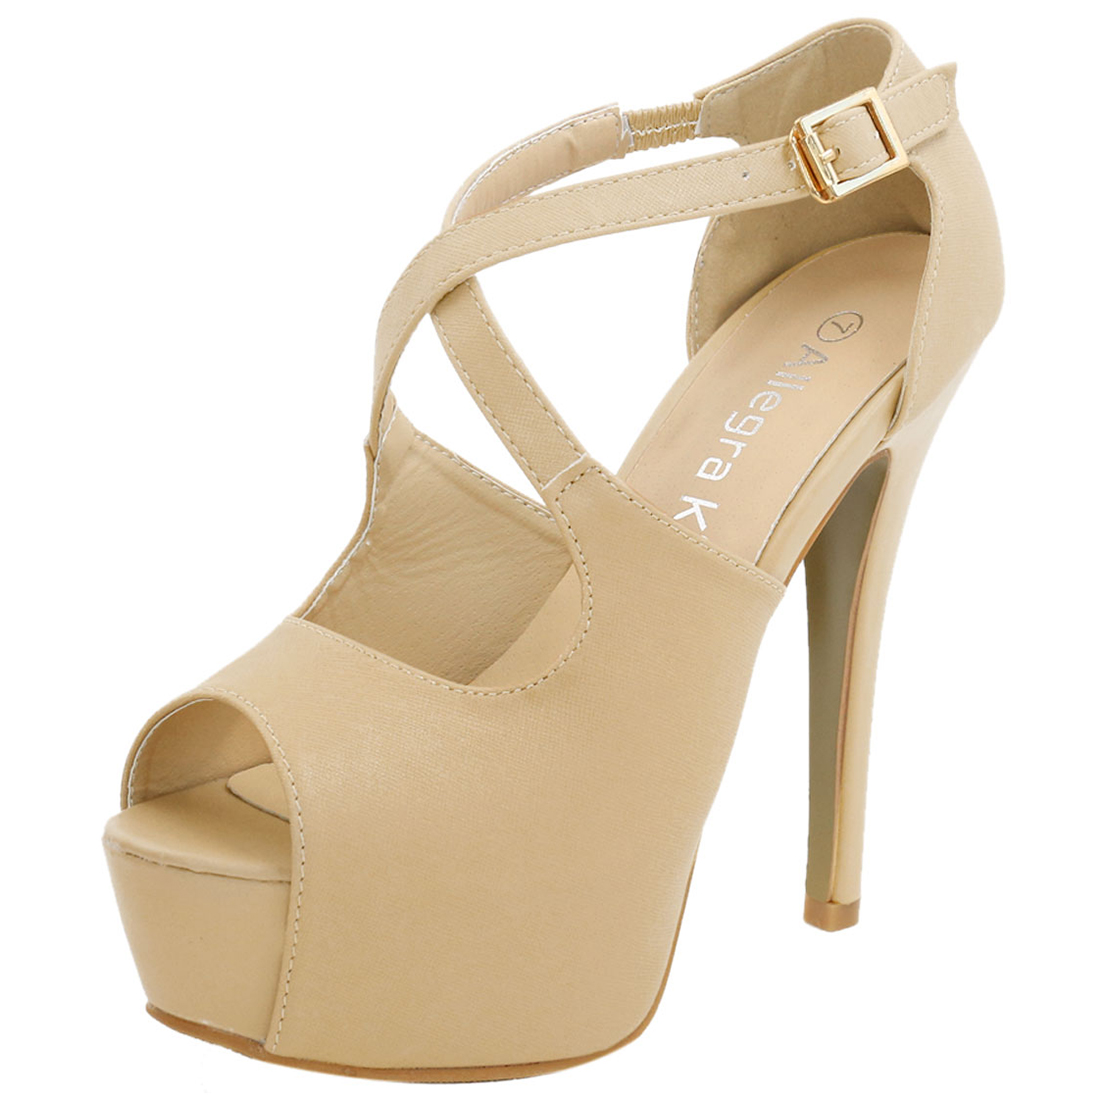 Woman Peep Toe High Heel Crisscross Straps Platform Sandals Beige US 7